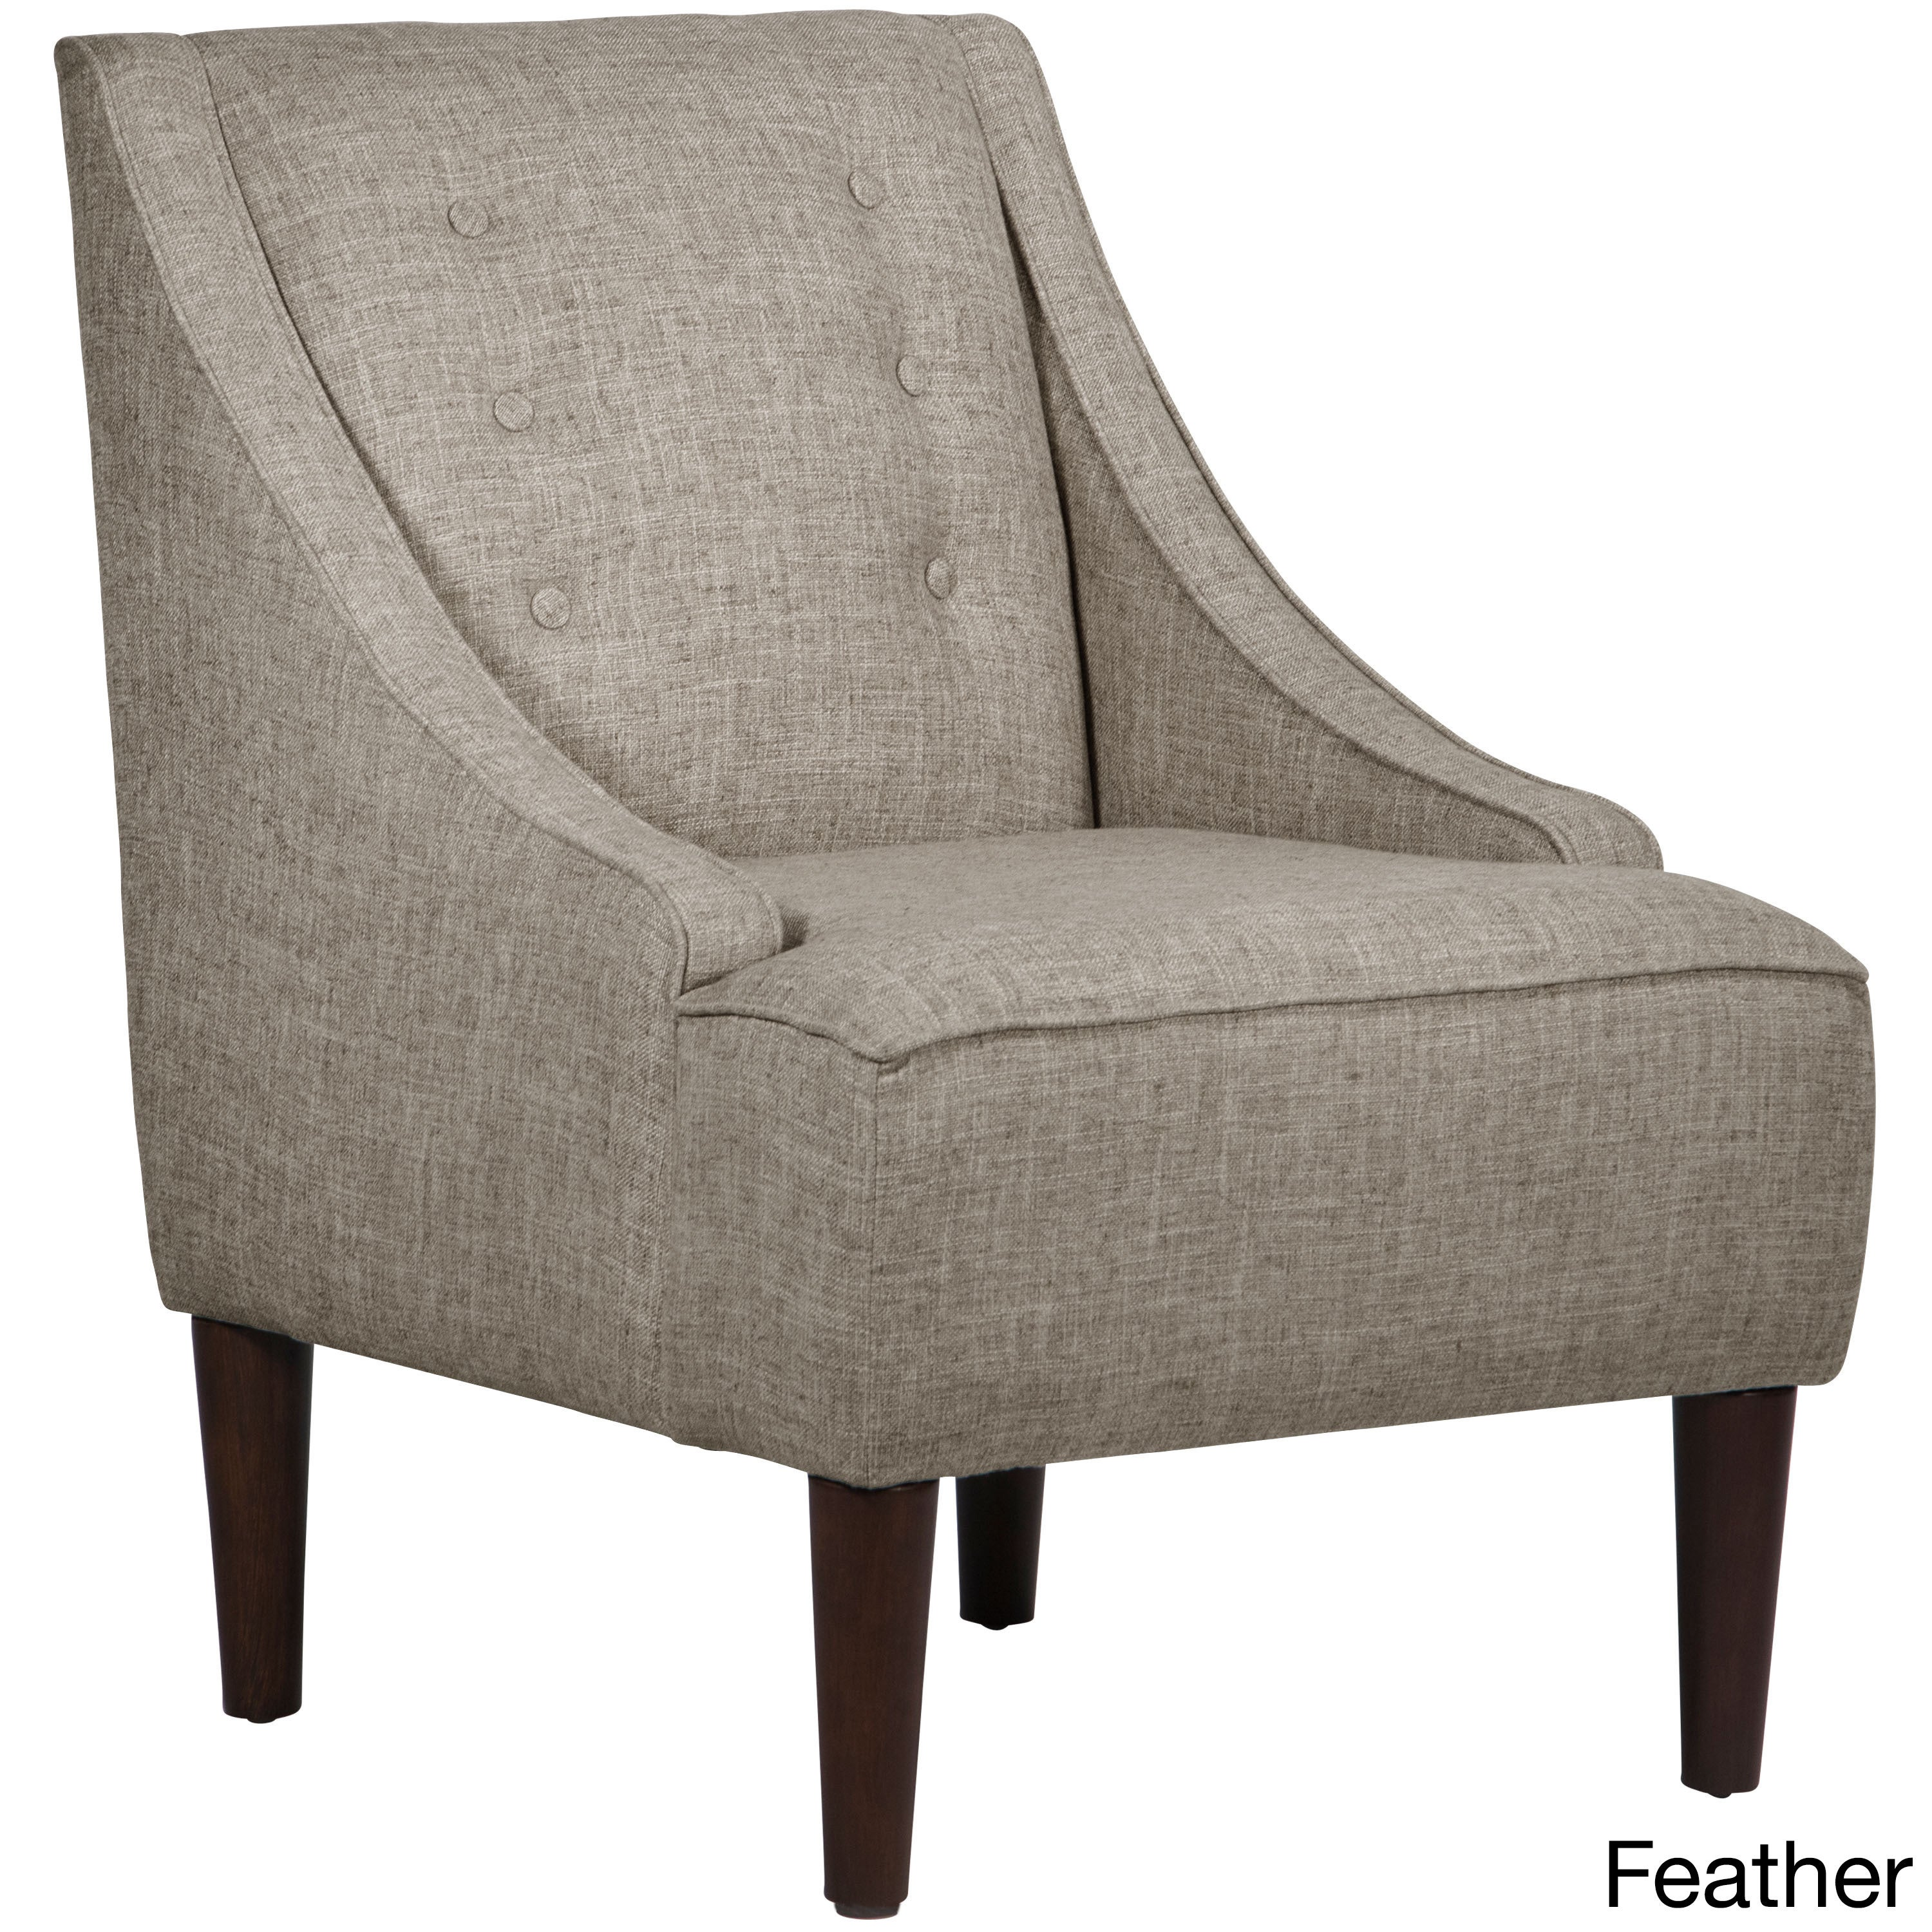 Shop Skyline Furniture Zuma Linen Fabric Midcentury Modern Chair   Free  Shipping Today   Overstock.com   13489165